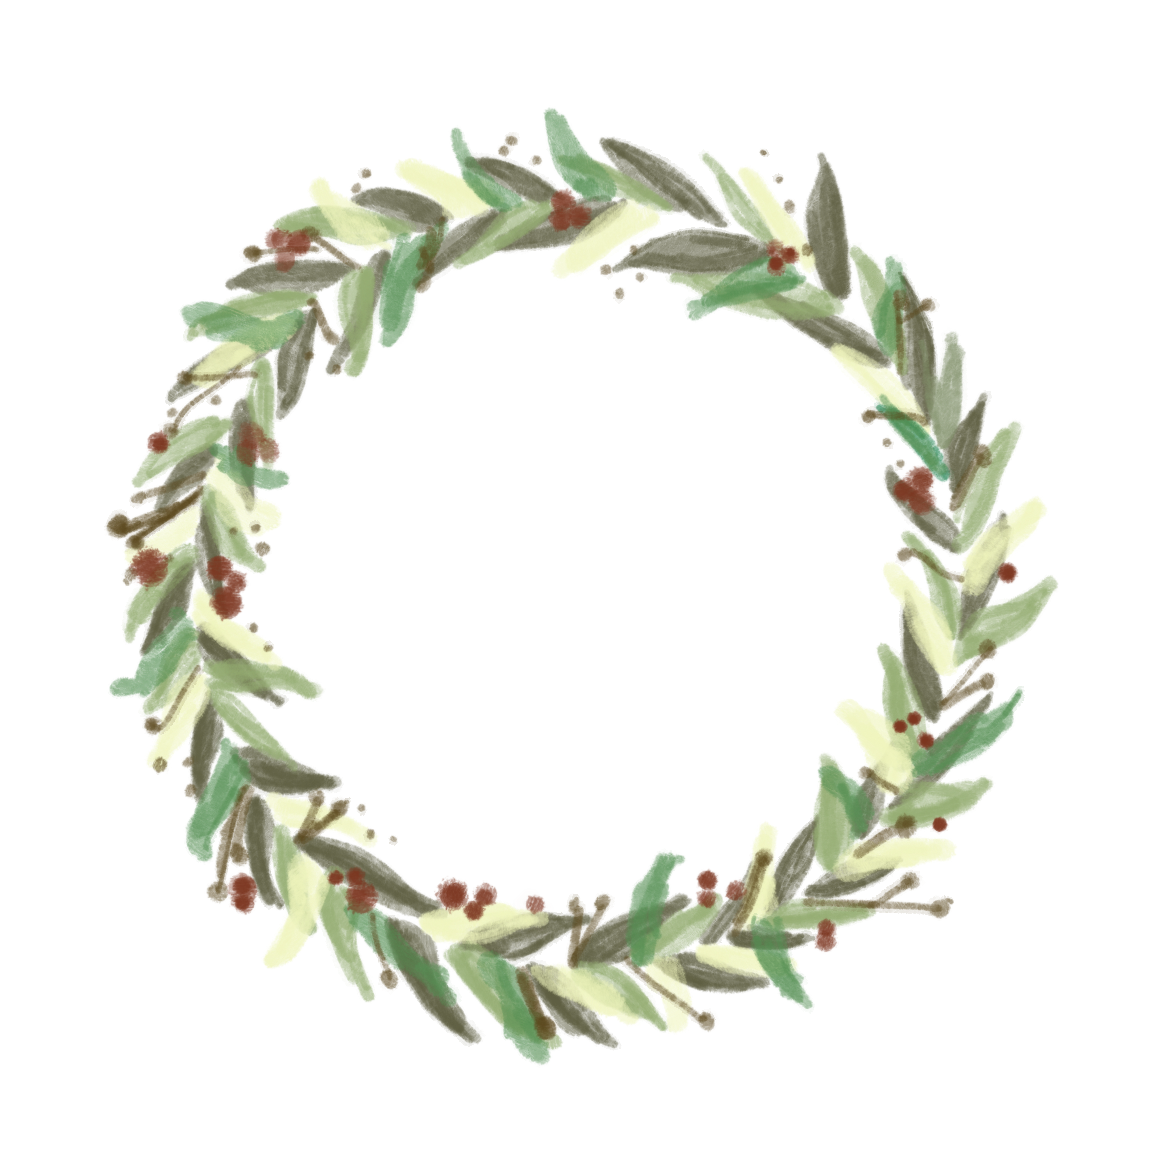 Painted Wreath Graphic - Free Download on Behance